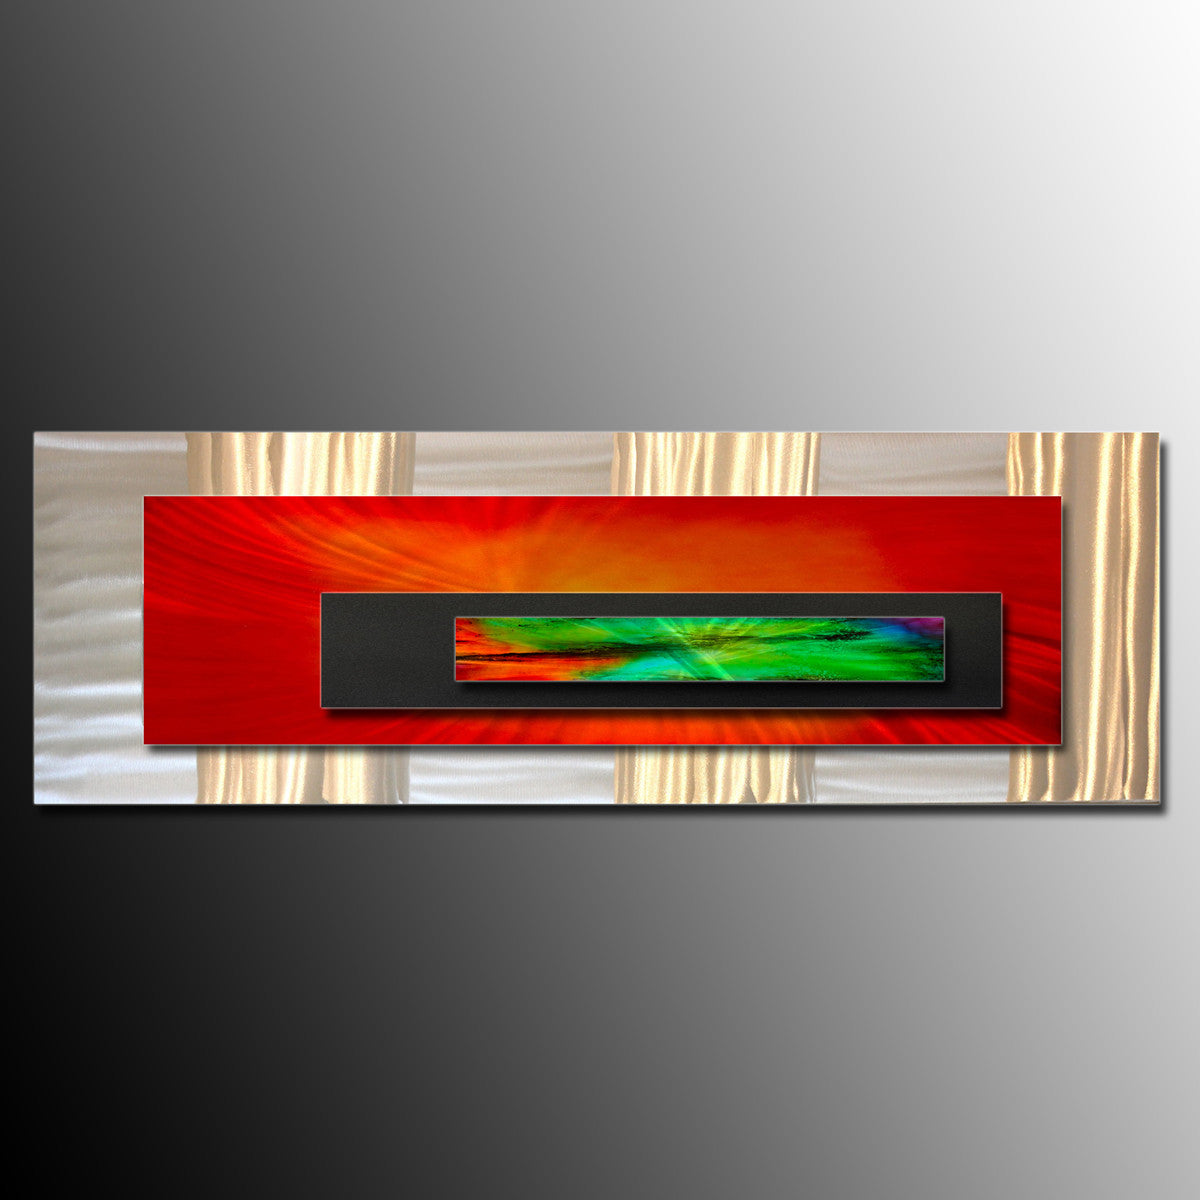 Extra large wall art oversized metal abstract sculpture for Extra large wall art